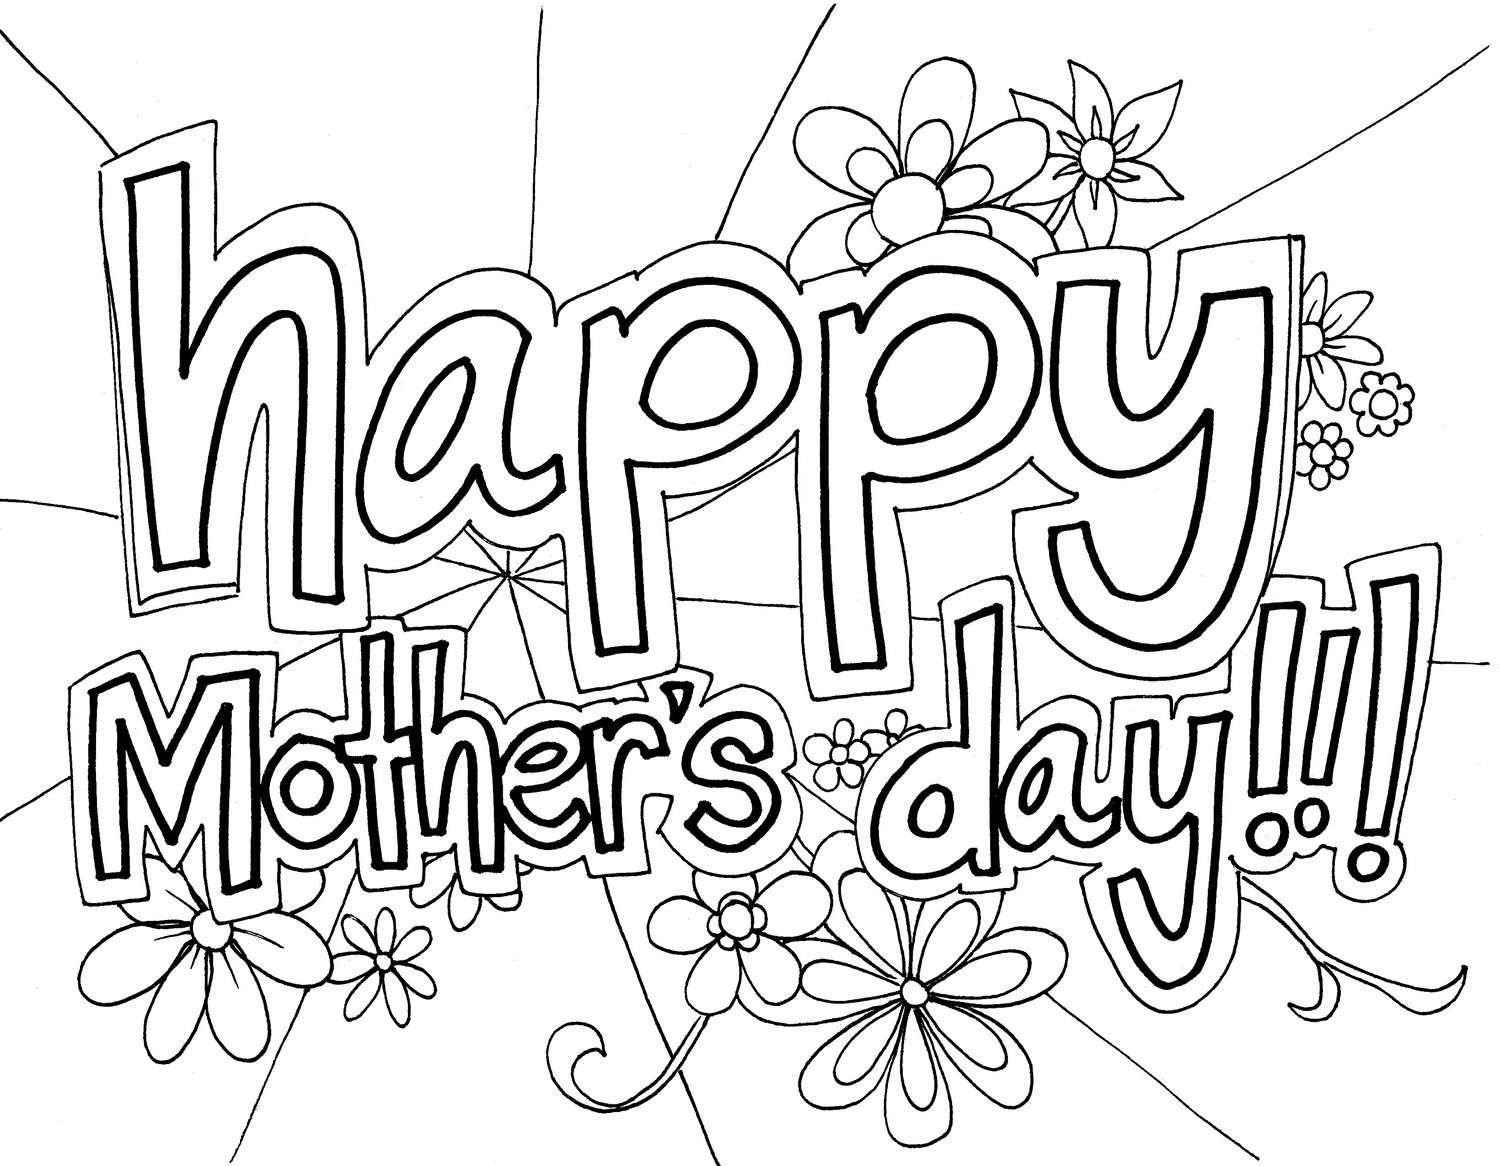 free coloring pages mothers day chocolatte designs free mother39s day coloring design coloring free pages mothers day